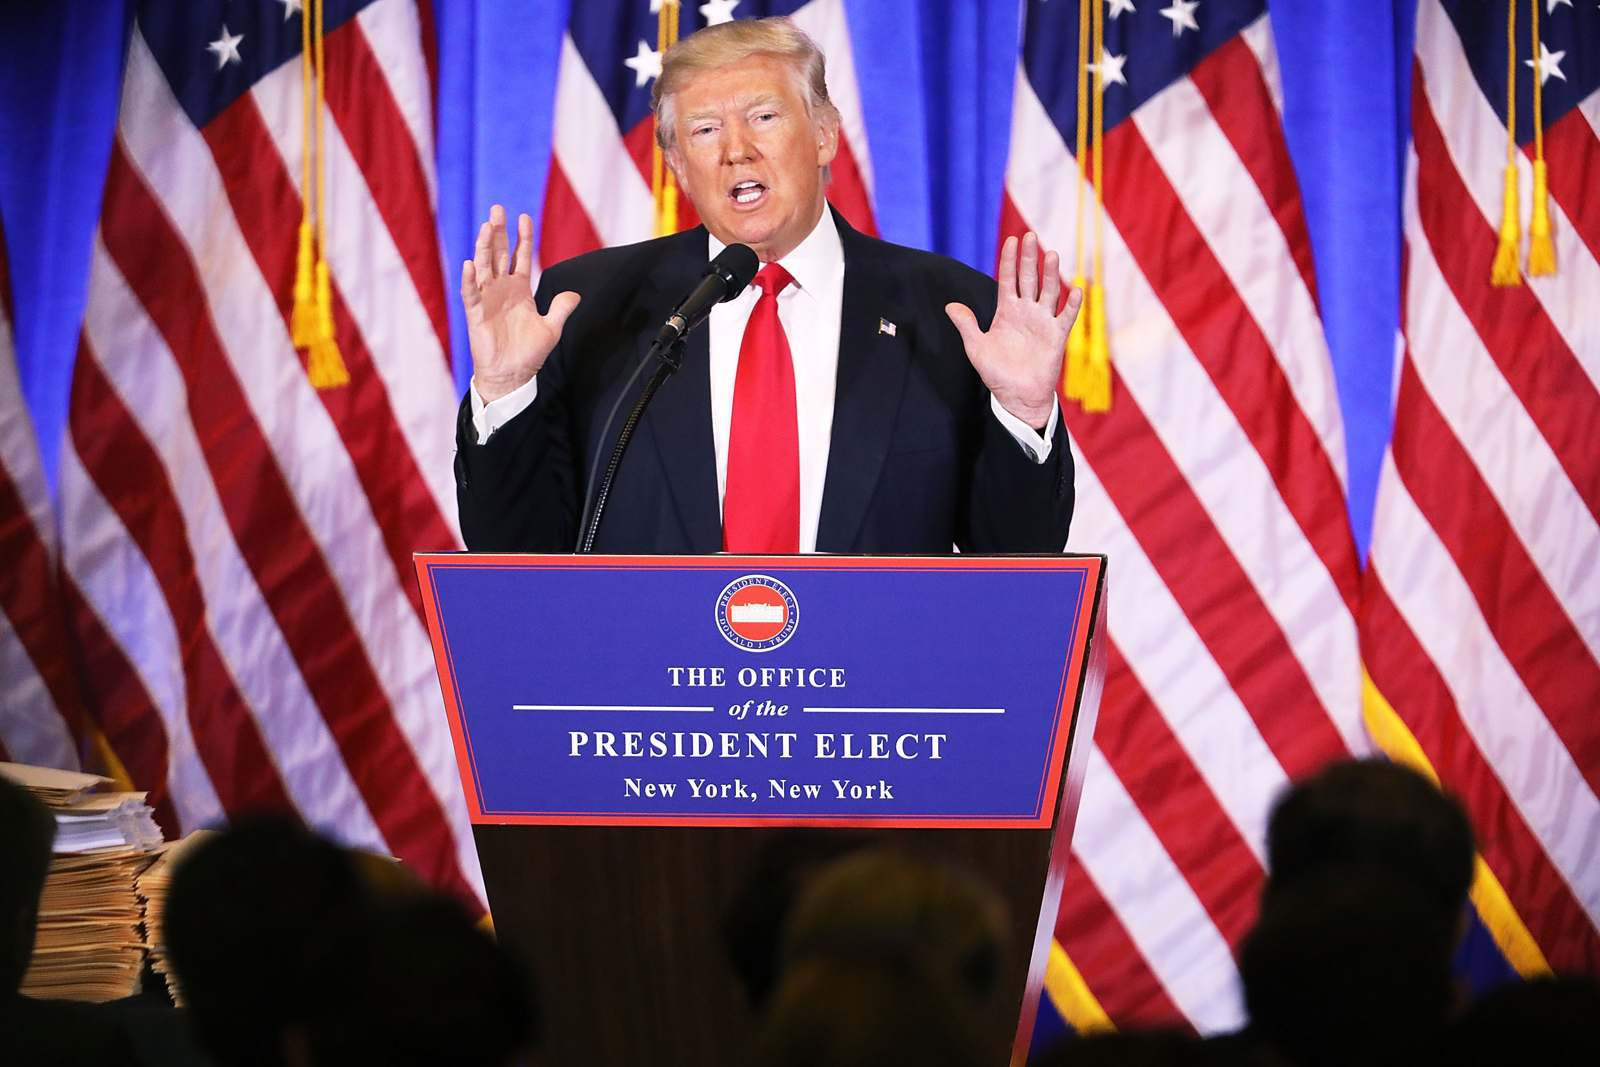 President-elect Donald Trump gave his first press conference in months Jan. 11 at the Trump Tower in New York. (Photo by Spencer Platt/Getty Images)